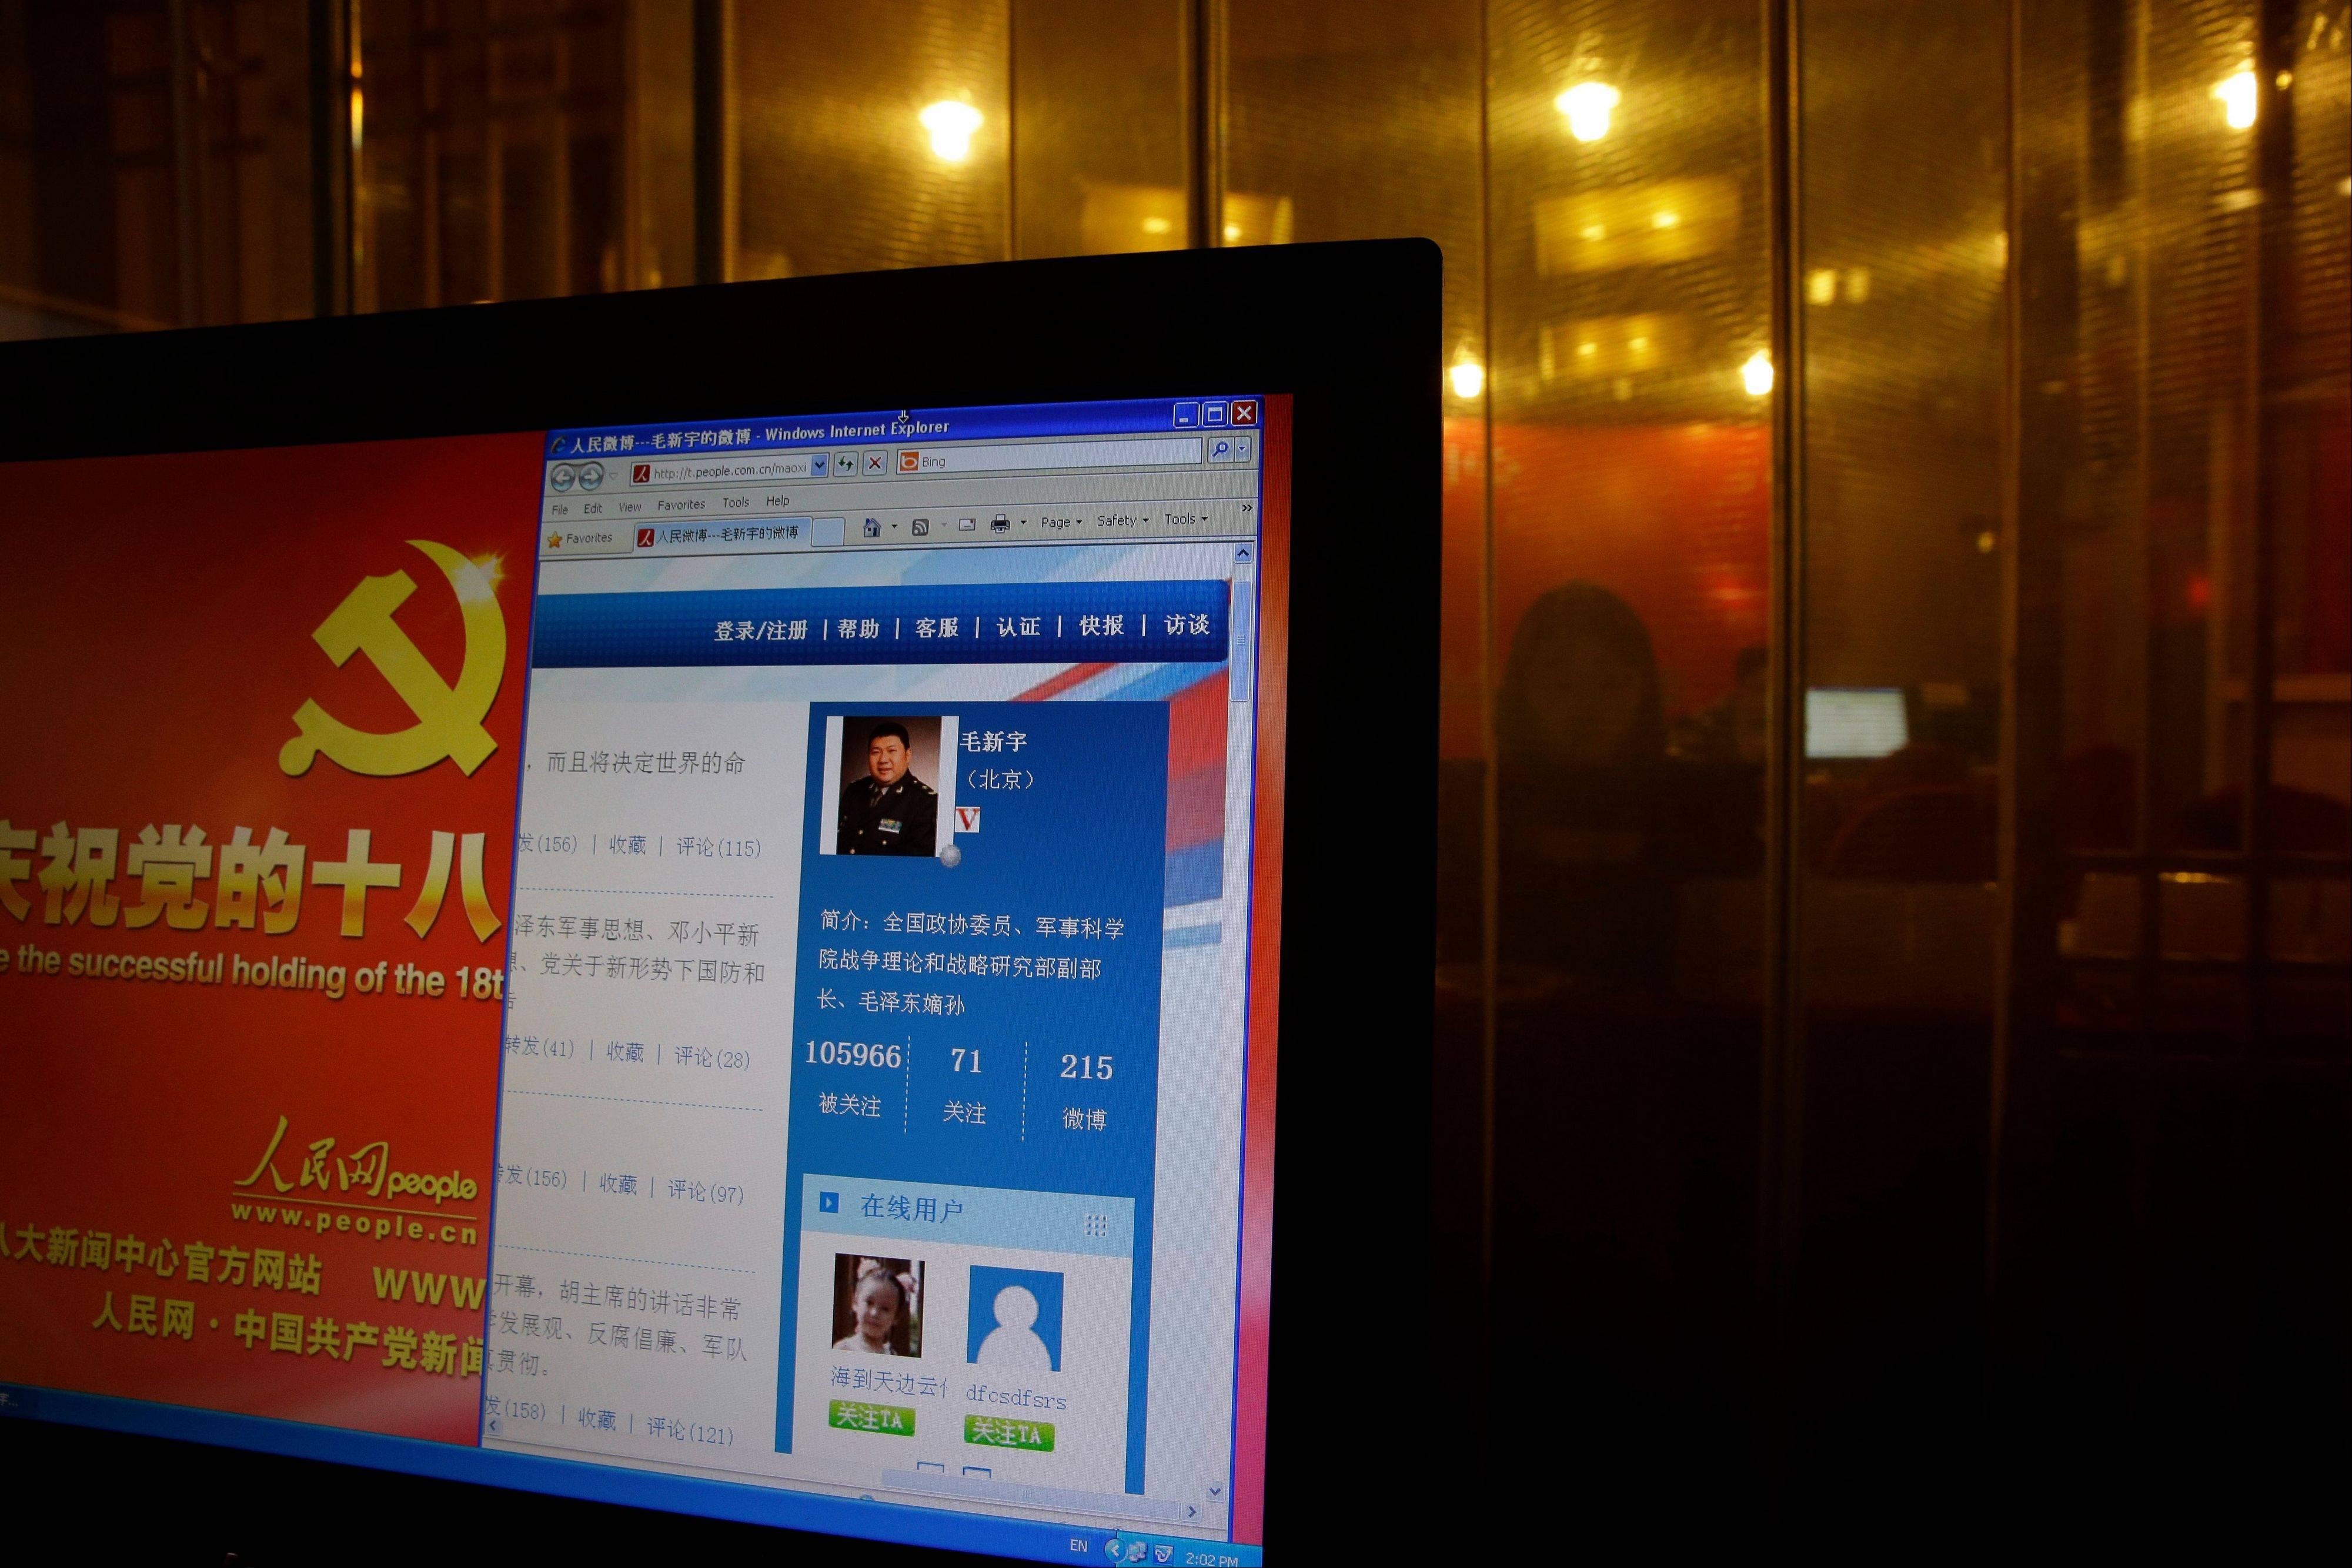 The microblog of Mao Zedong's grandson Mao Xinyu is displayed on a computer screen Tuesday at the press center of the 18th Communist Party Congress in Beijing.